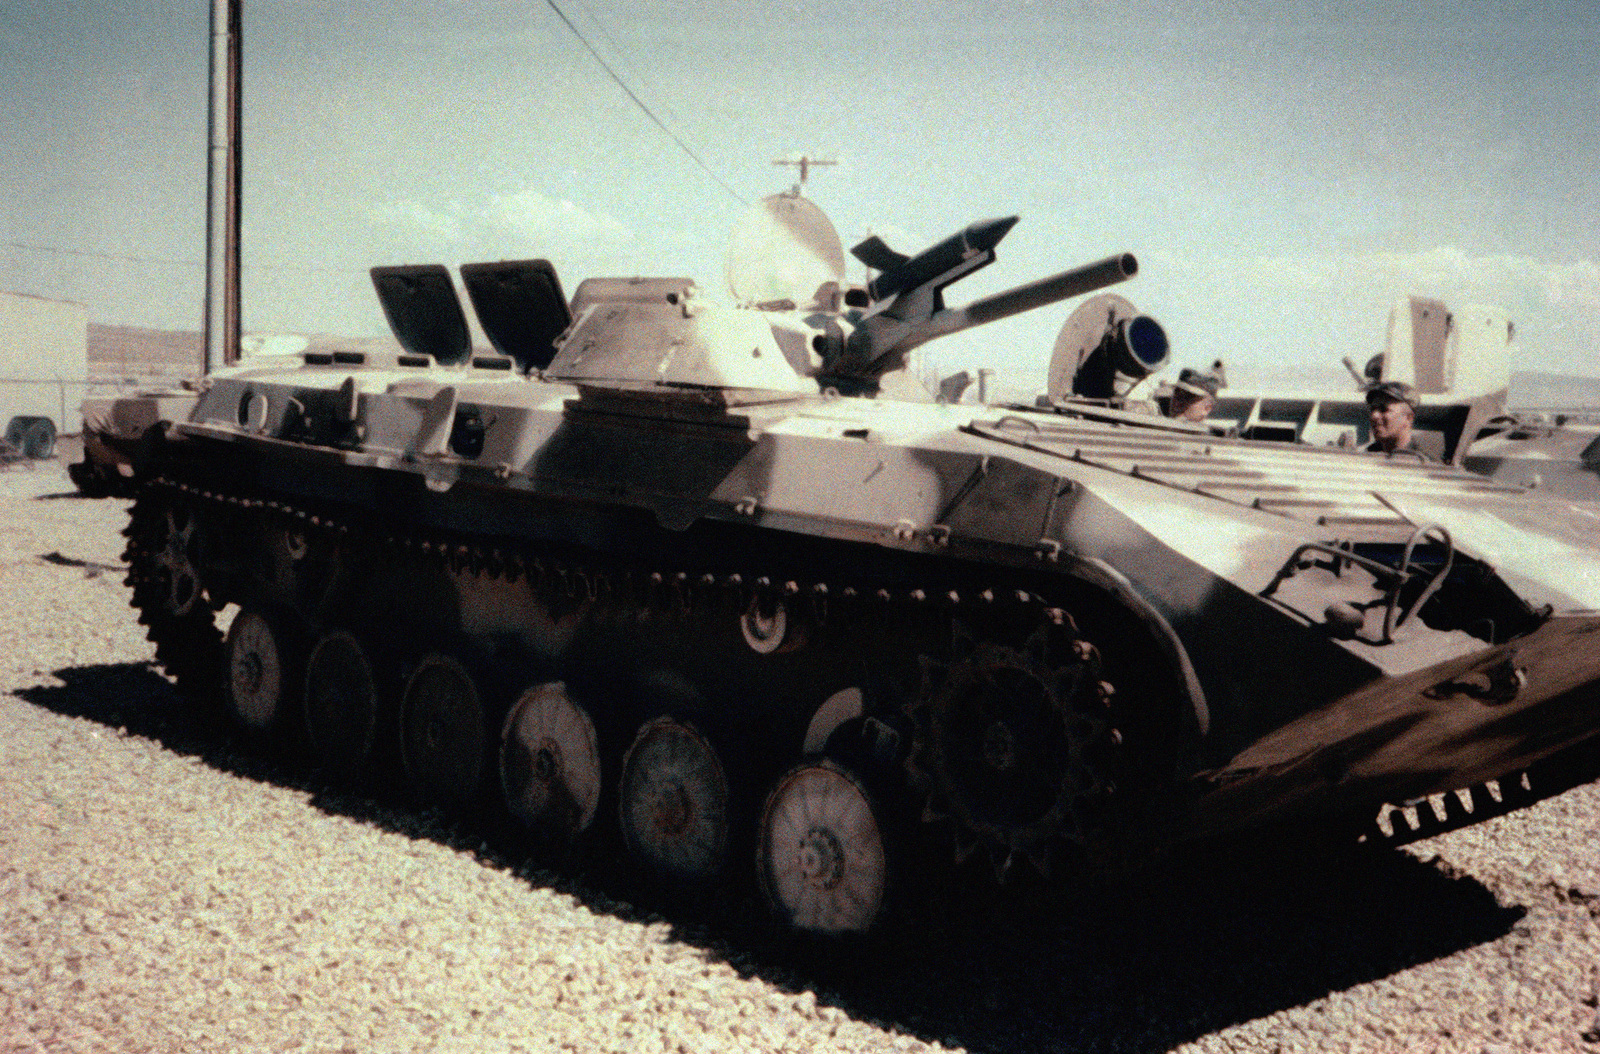 Right front view, on display, Soviet Armored Personnel Carrier, BMP-1 Mechanized Infantry Combat Vehicle